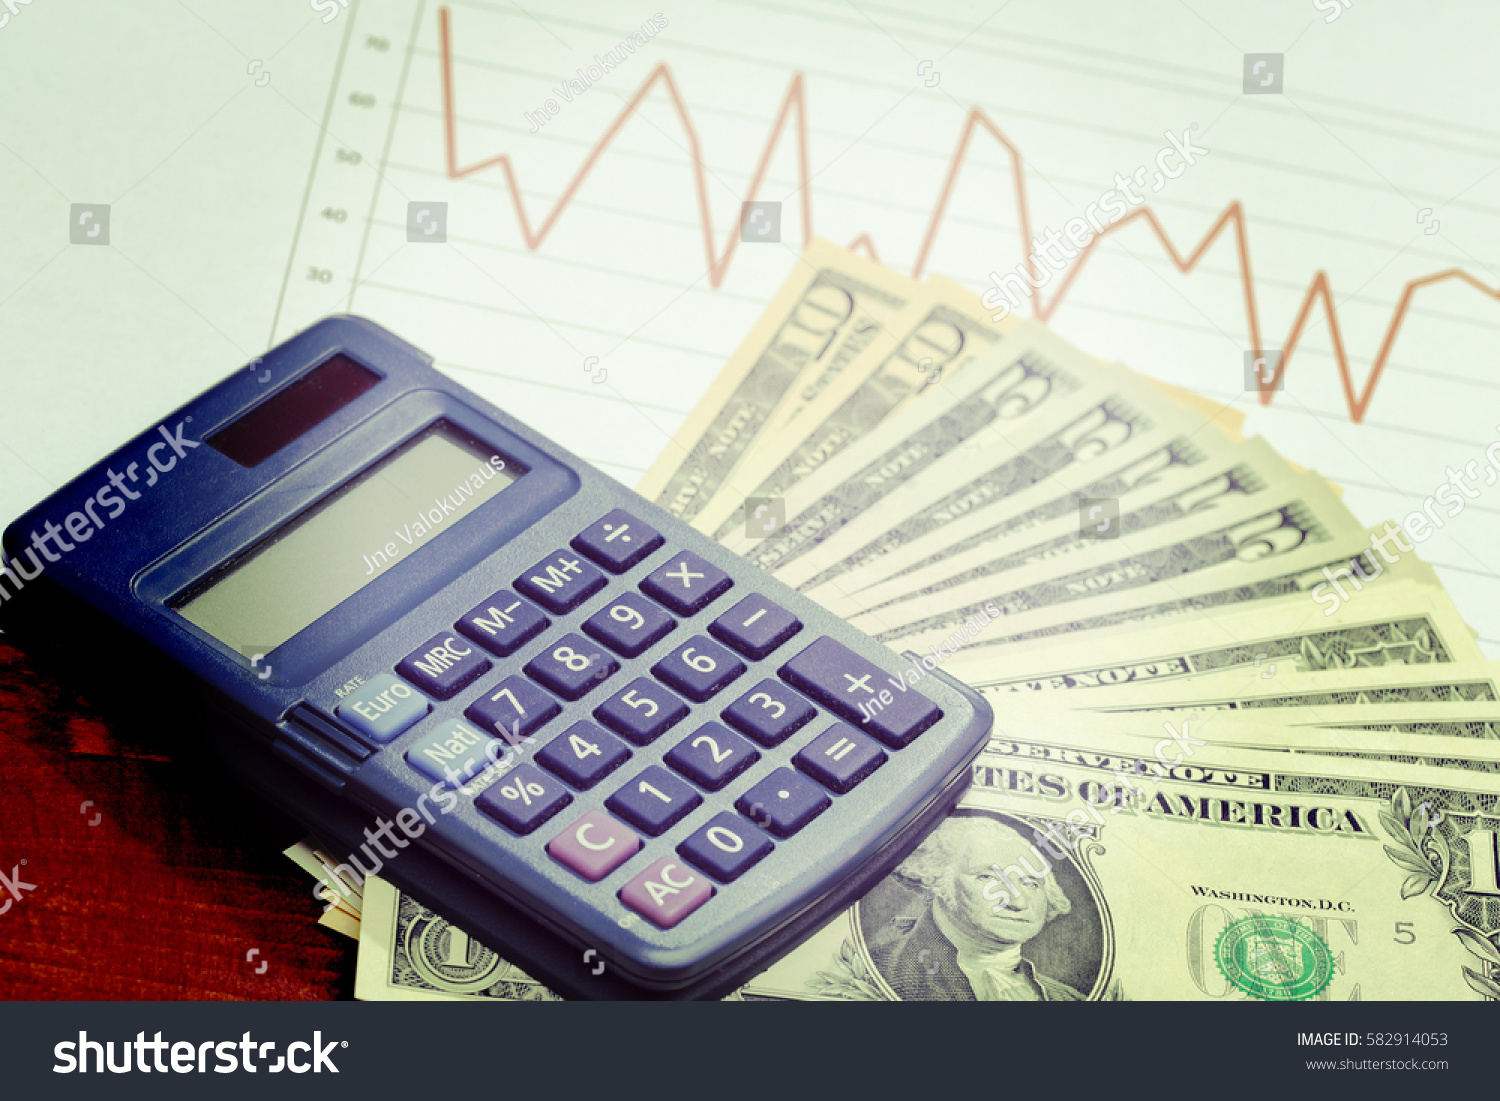 Us dollars calculator line chart sales stock photo 582914053 us dollars and a calculator with line chart for sales or stock market data business geenschuldenfo Image collections